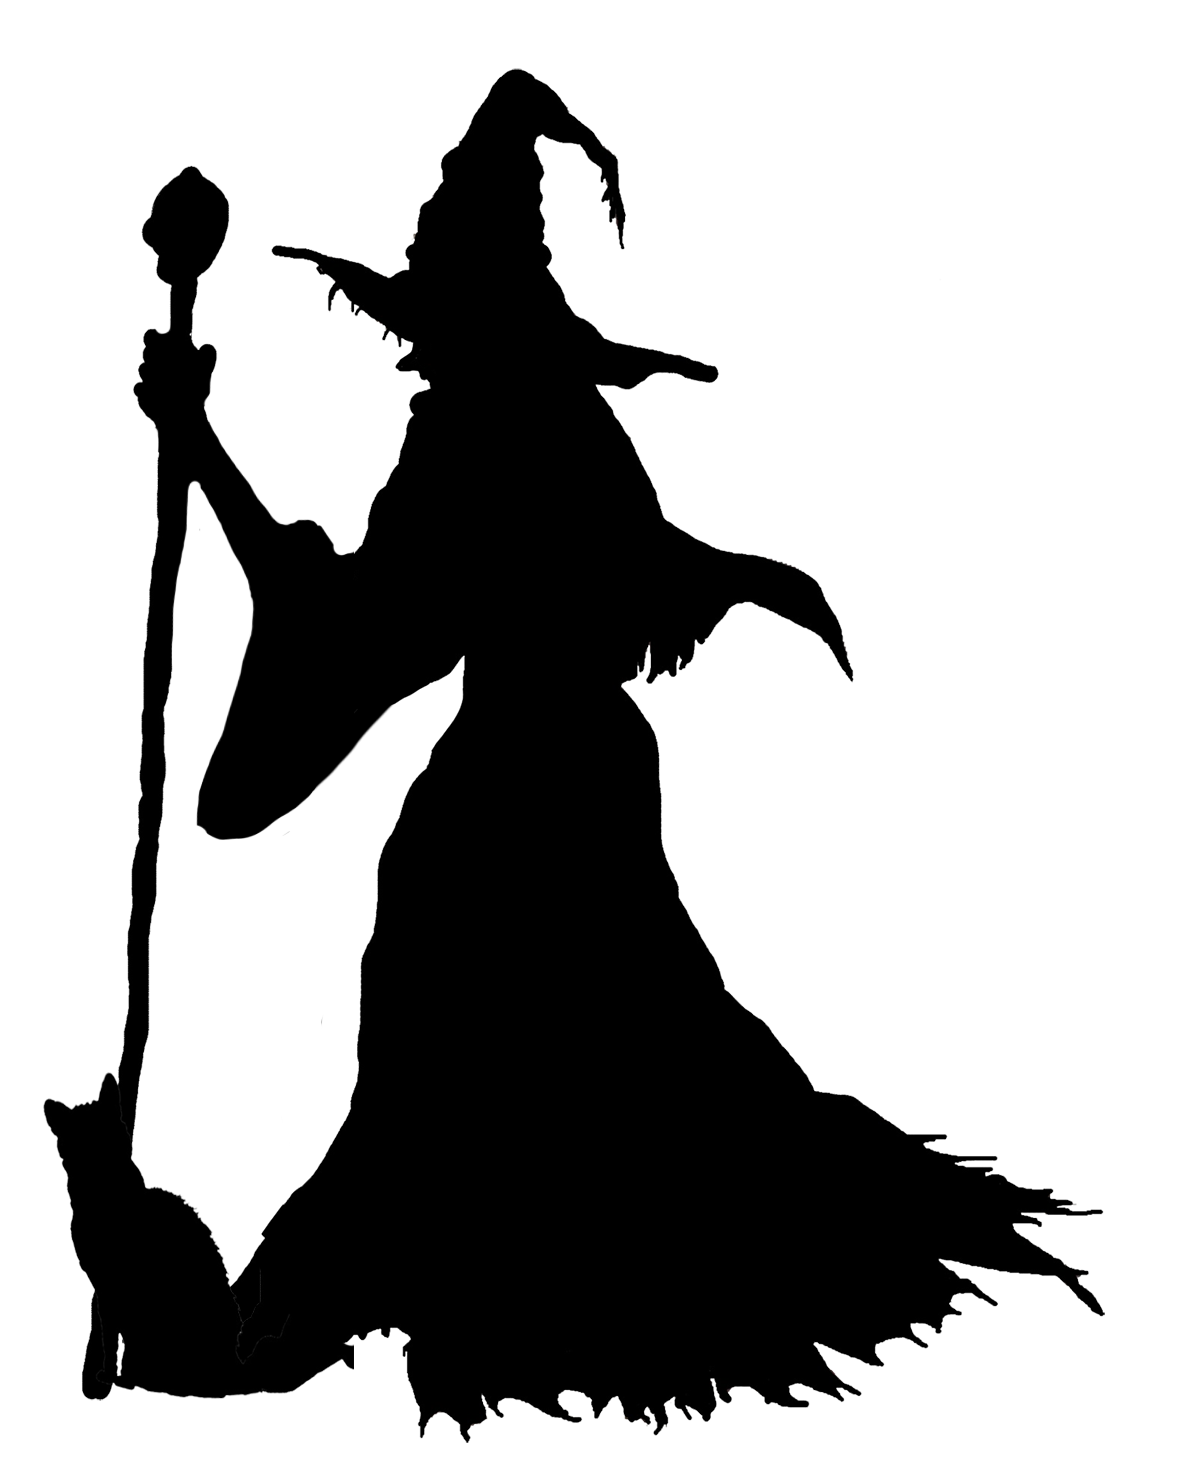 Witches silhouette at getdrawings. Witch clipart black cat